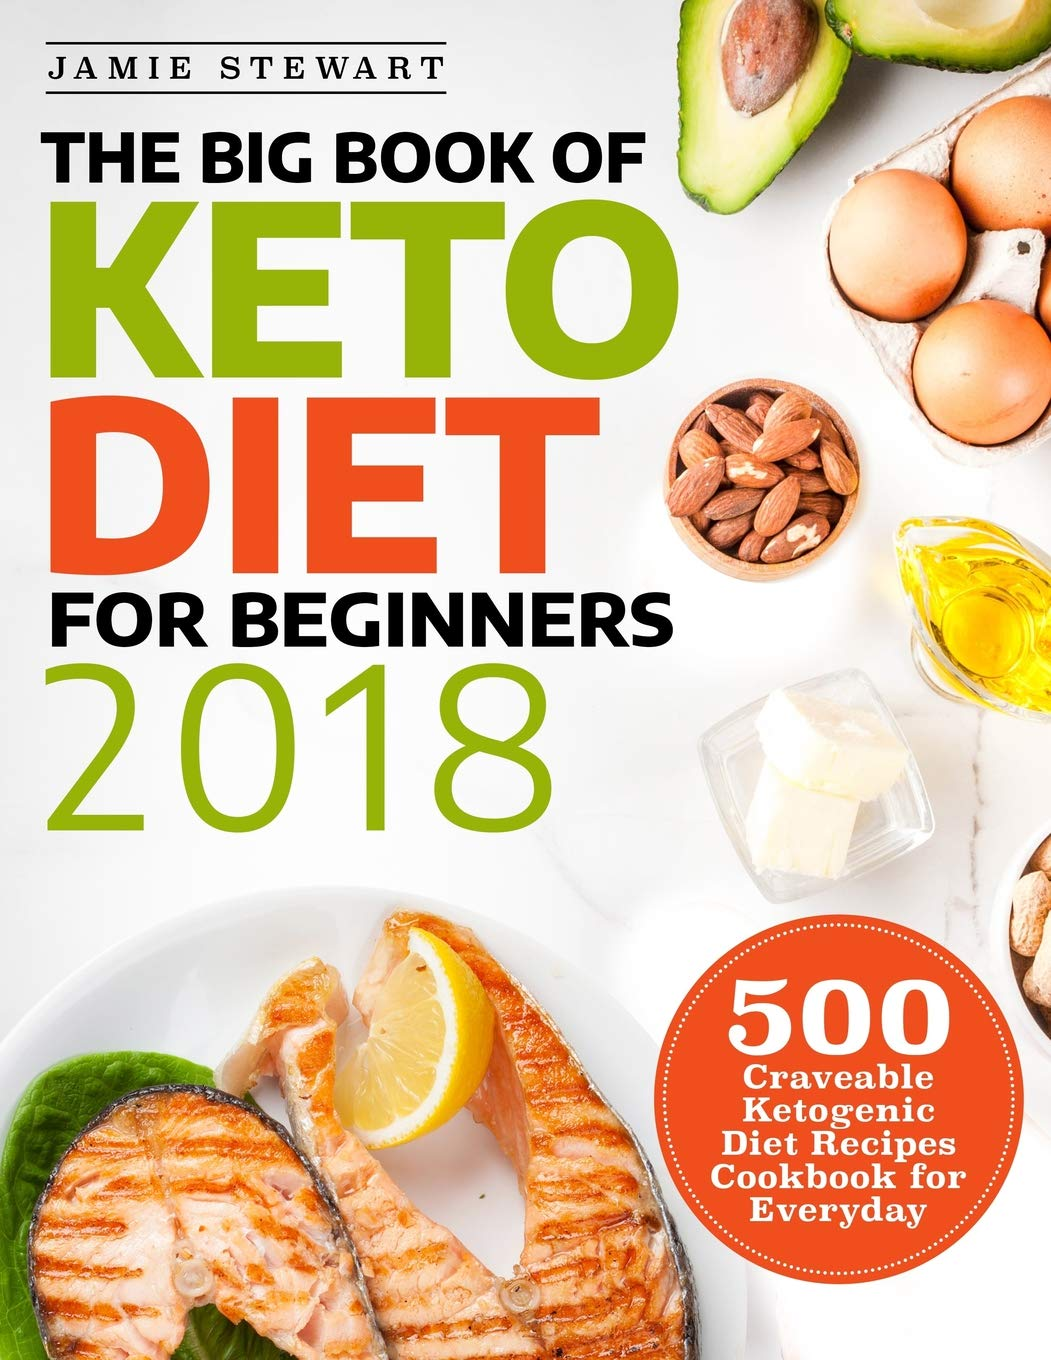 The Big Book Of Keto Diet For Beginners 2018  500 Craveable Ketogenic Diet Recipes Cookbook For Everyday  Keto Cookbook Band 1